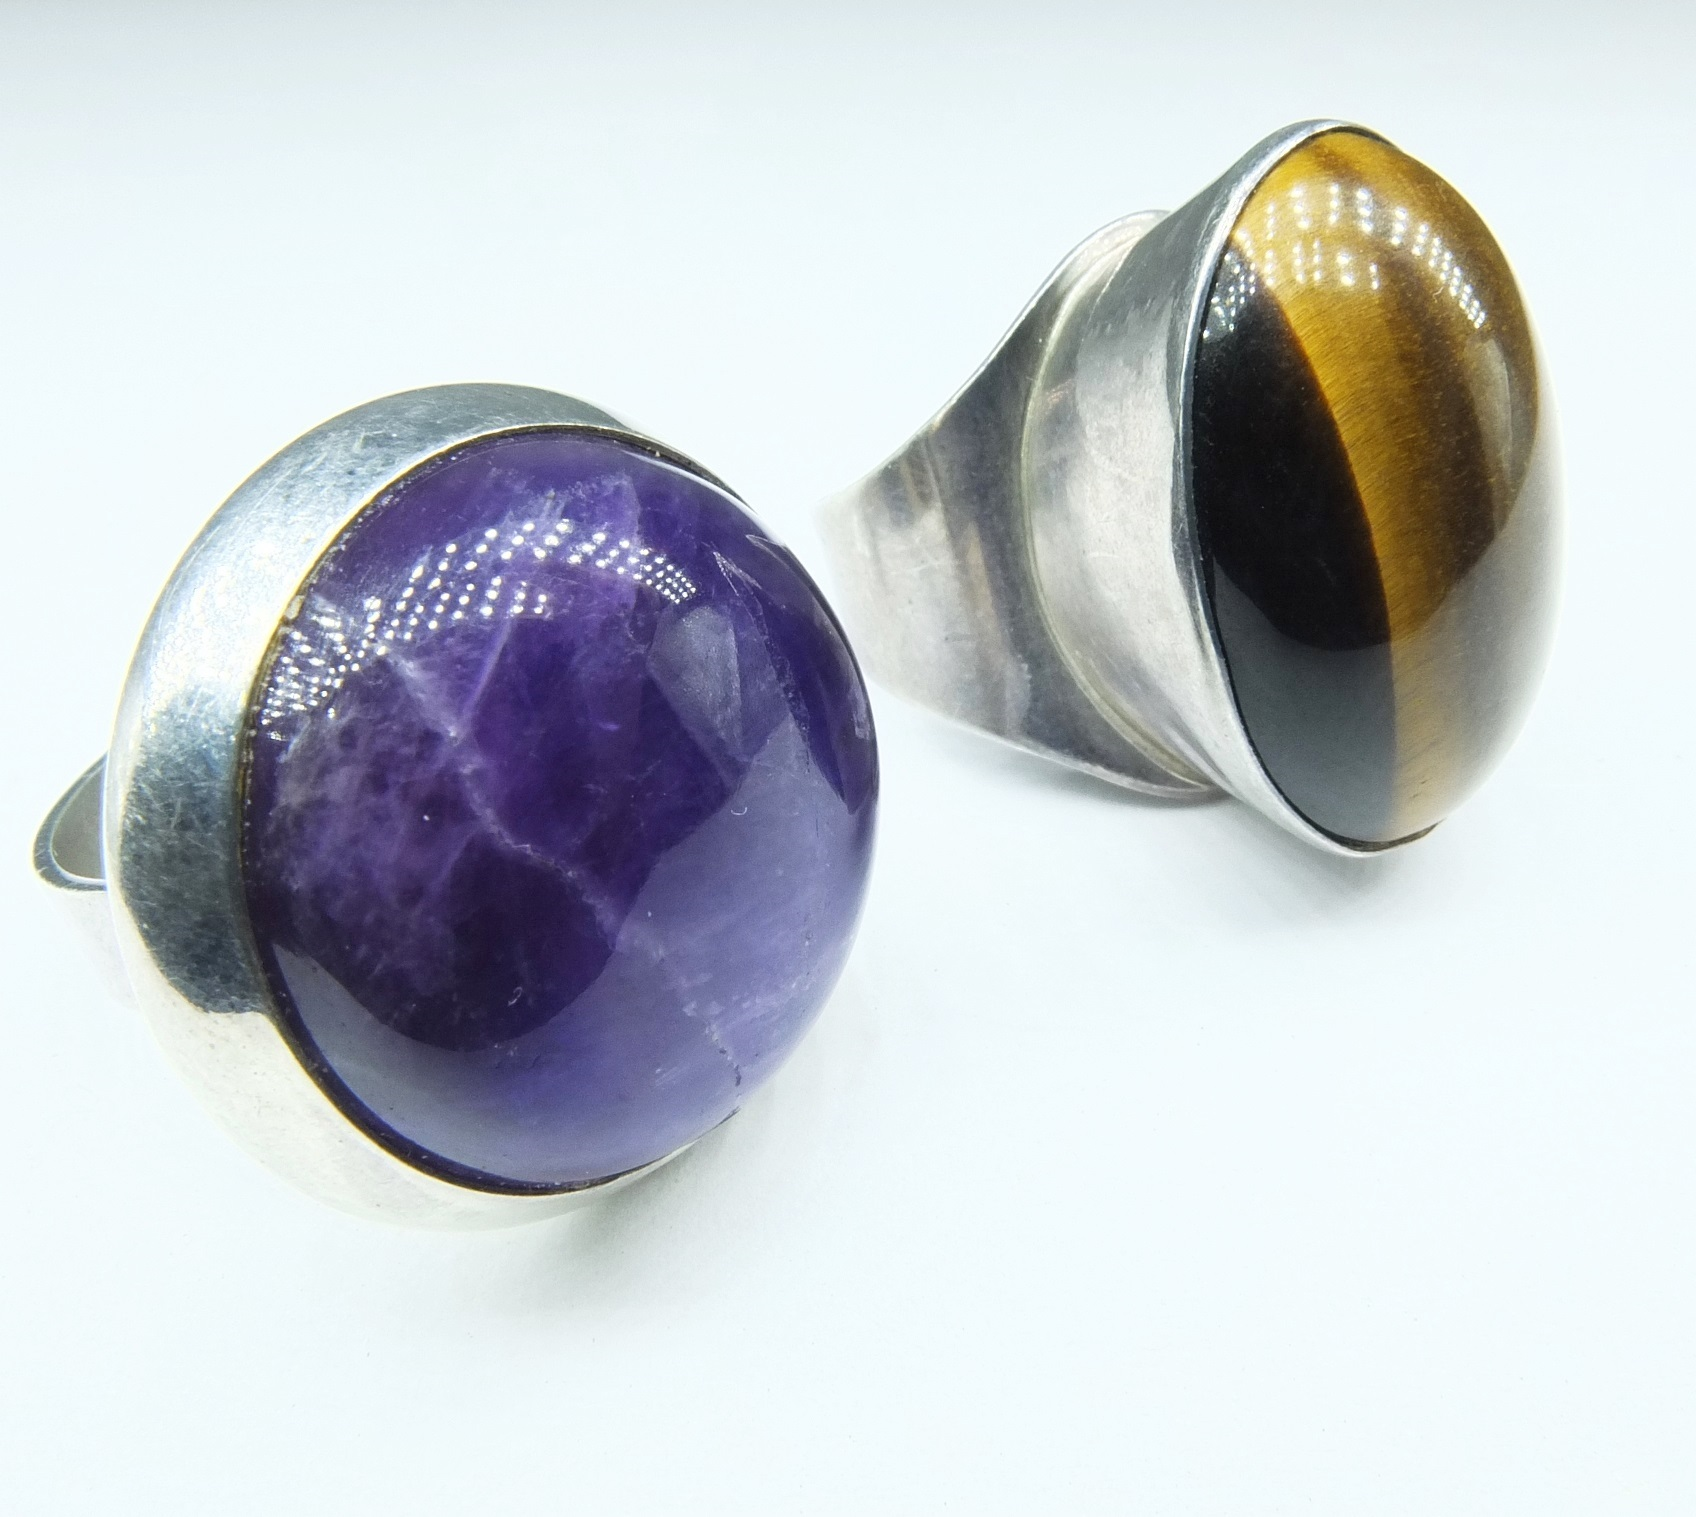 'Sterling Silver and Amethyst Ring, Israeli Sterling Silver and Tiger Eye Ring and a Pewter Bracelet'